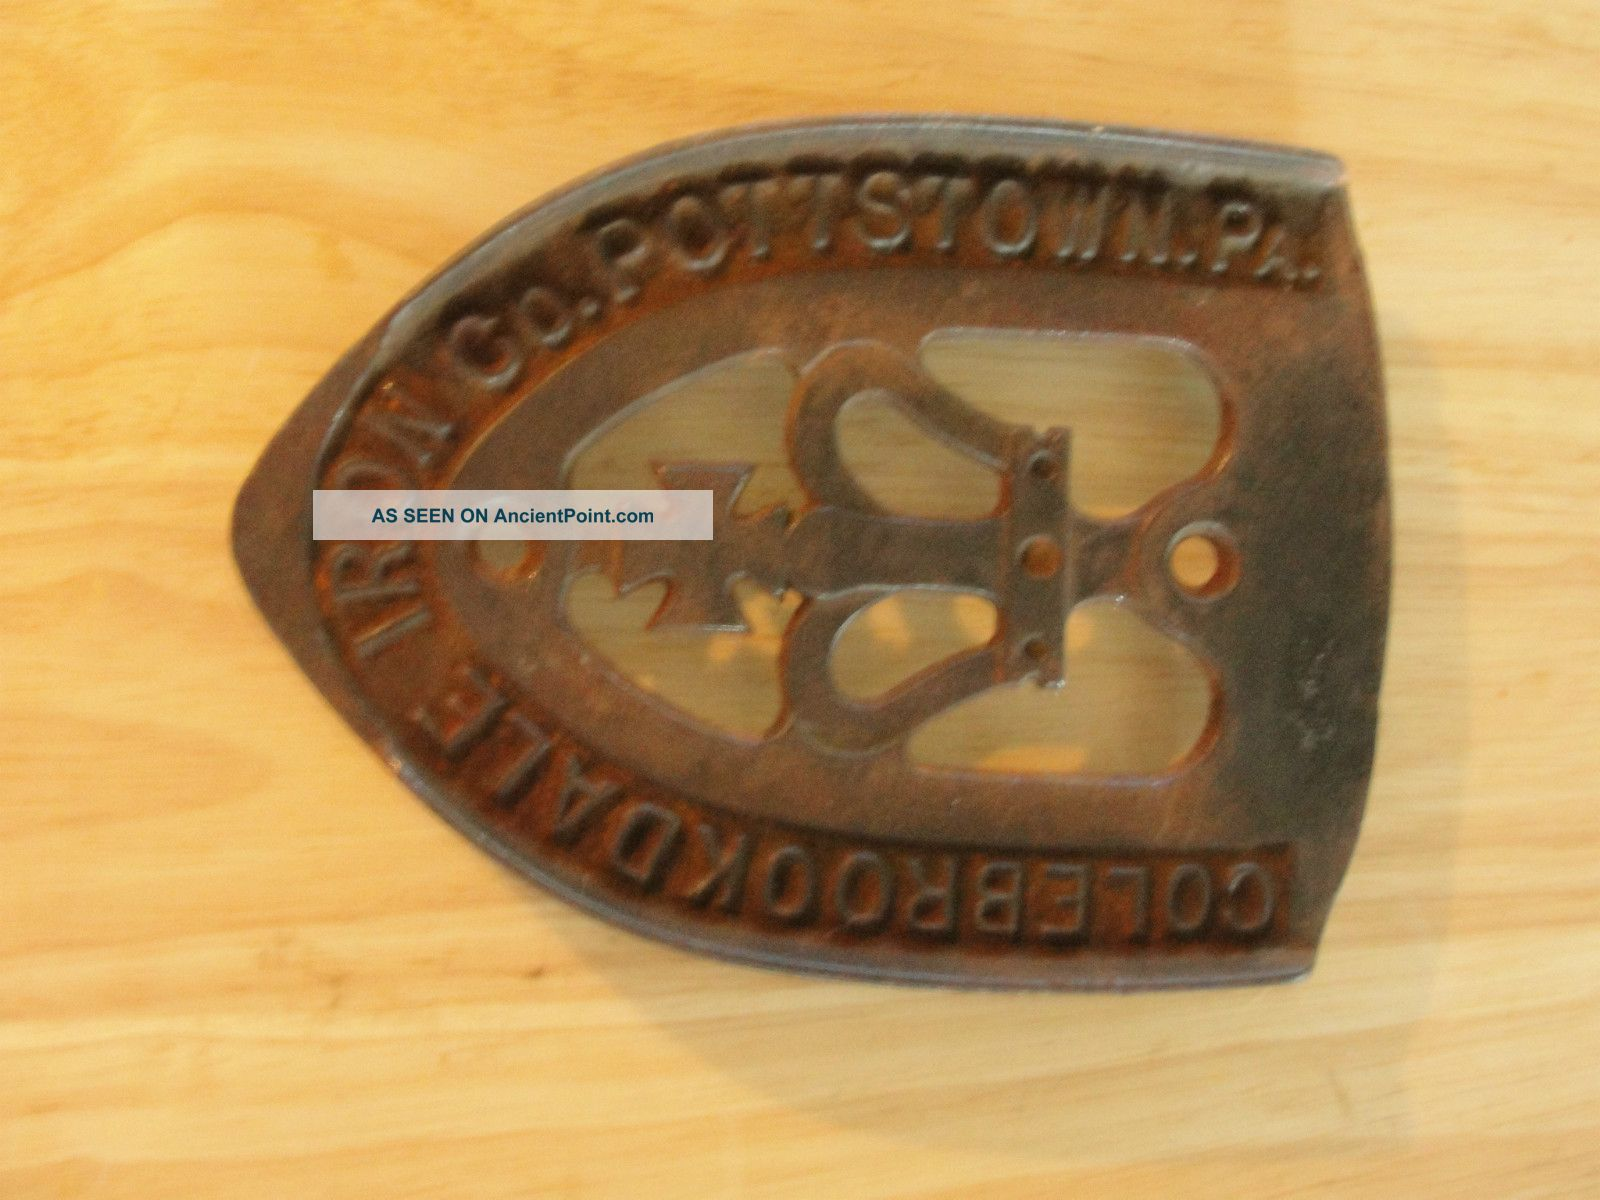 Colebrookdale Iron Co,  Pottstown,  Pa,  Old Iron Trivet,  Advertising,  Crown Trivets photo